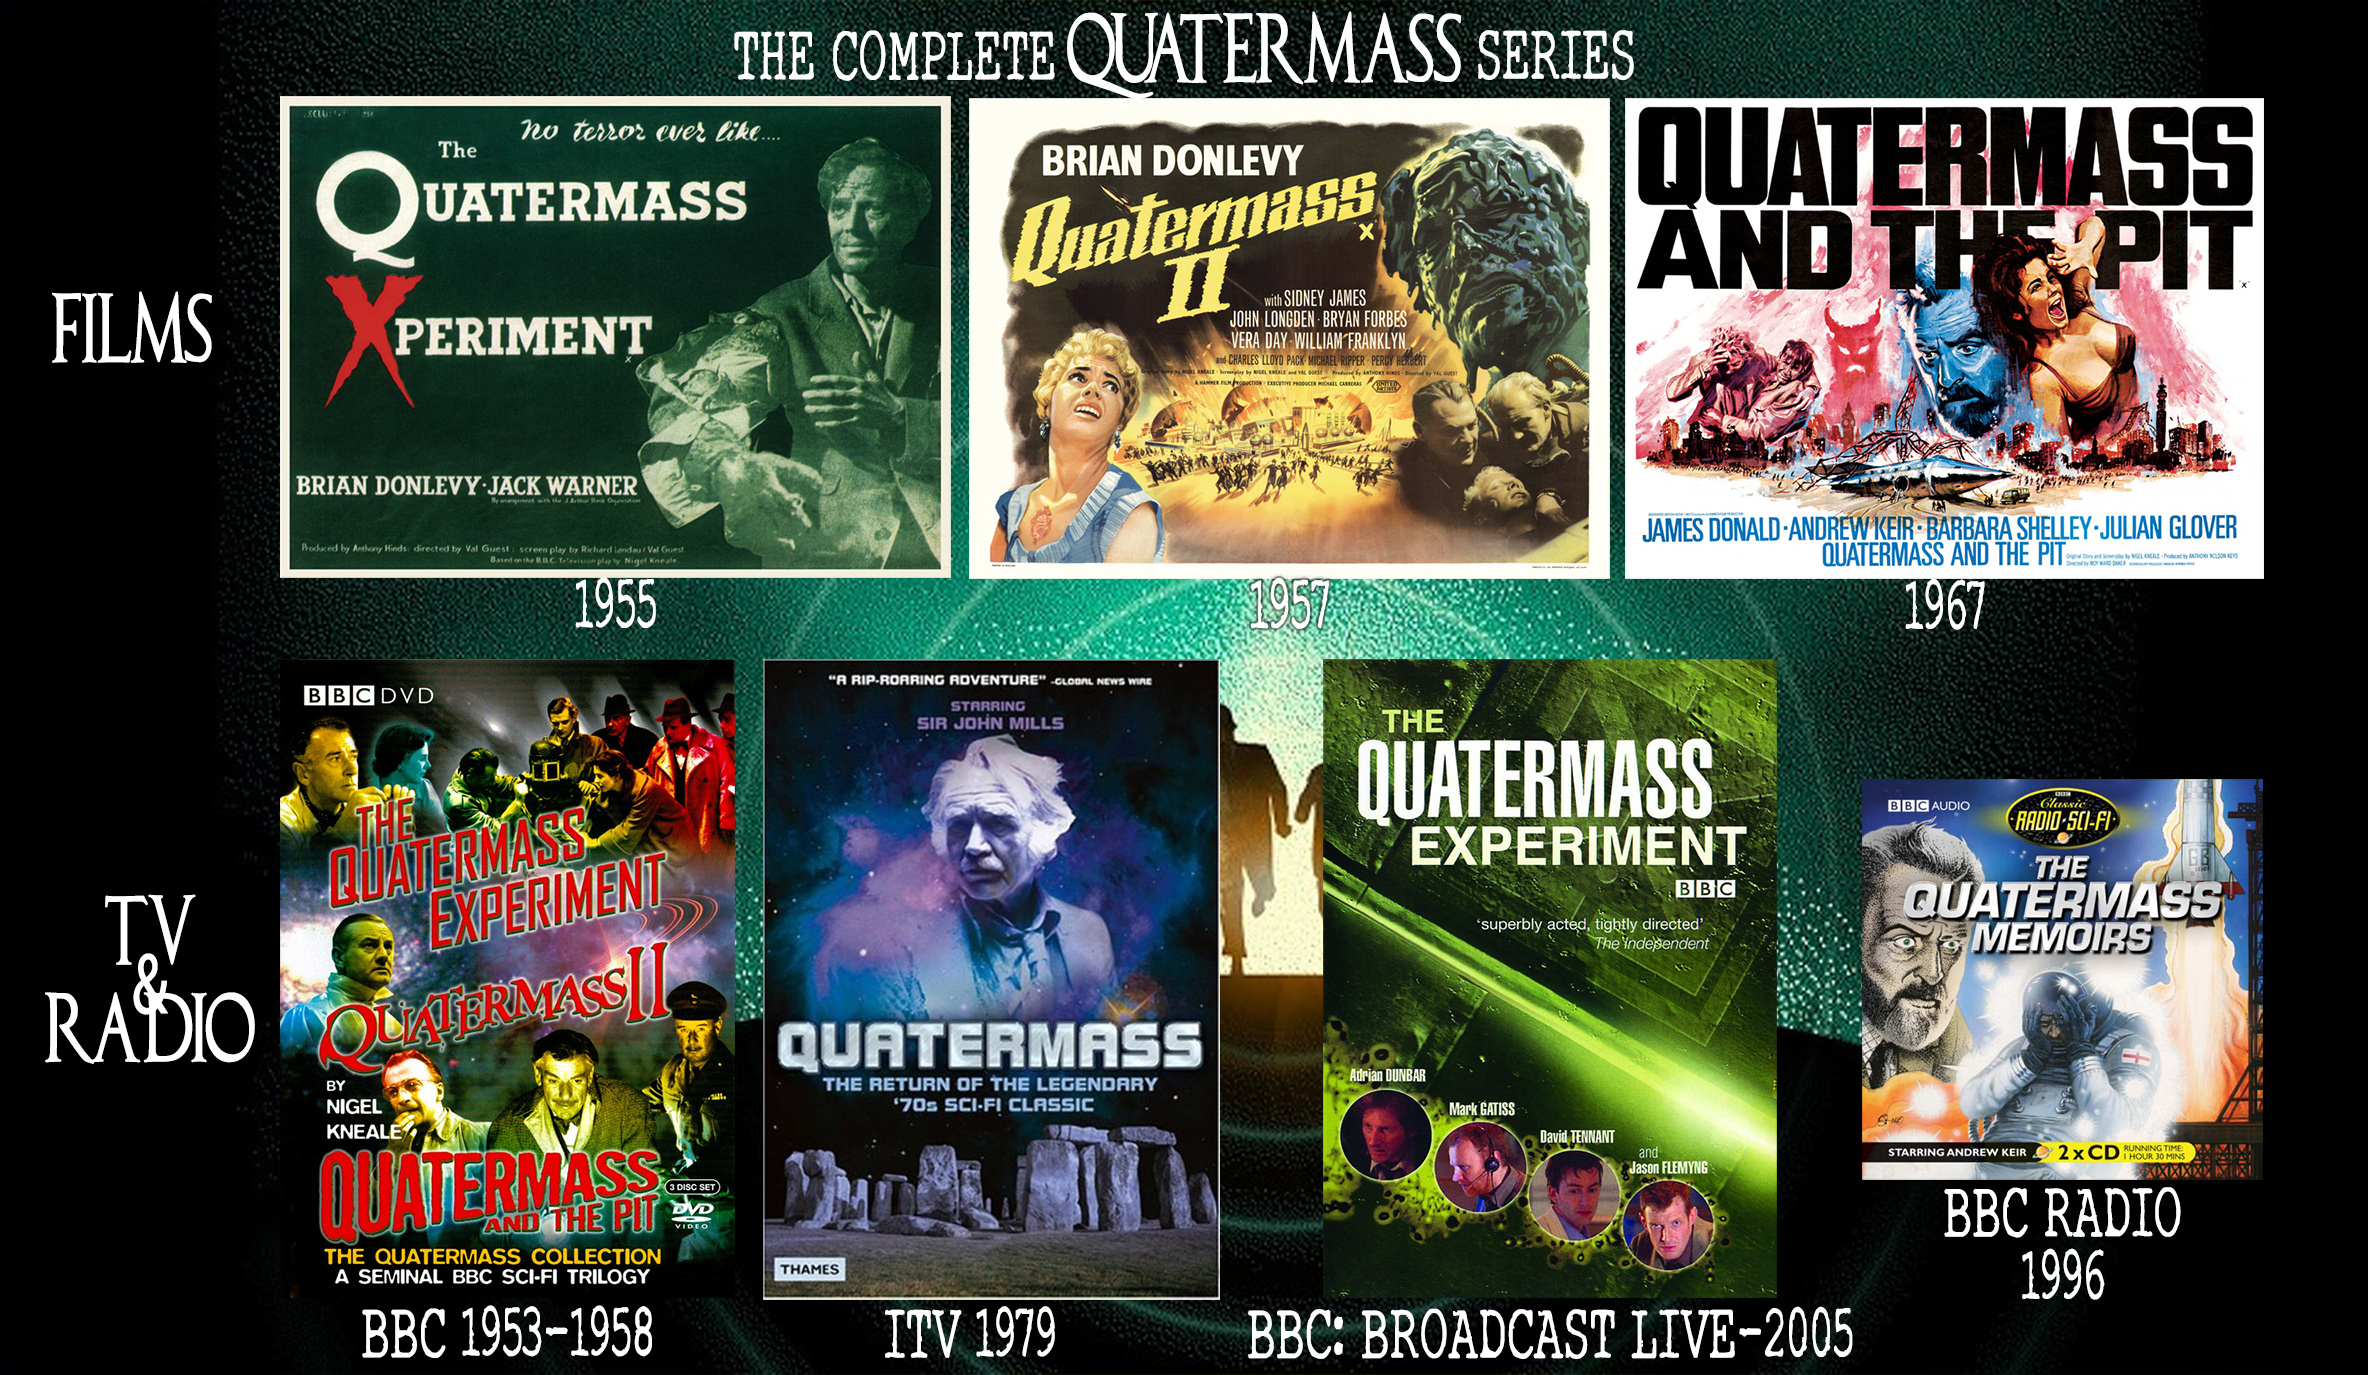 Quatermas TV Film Radio